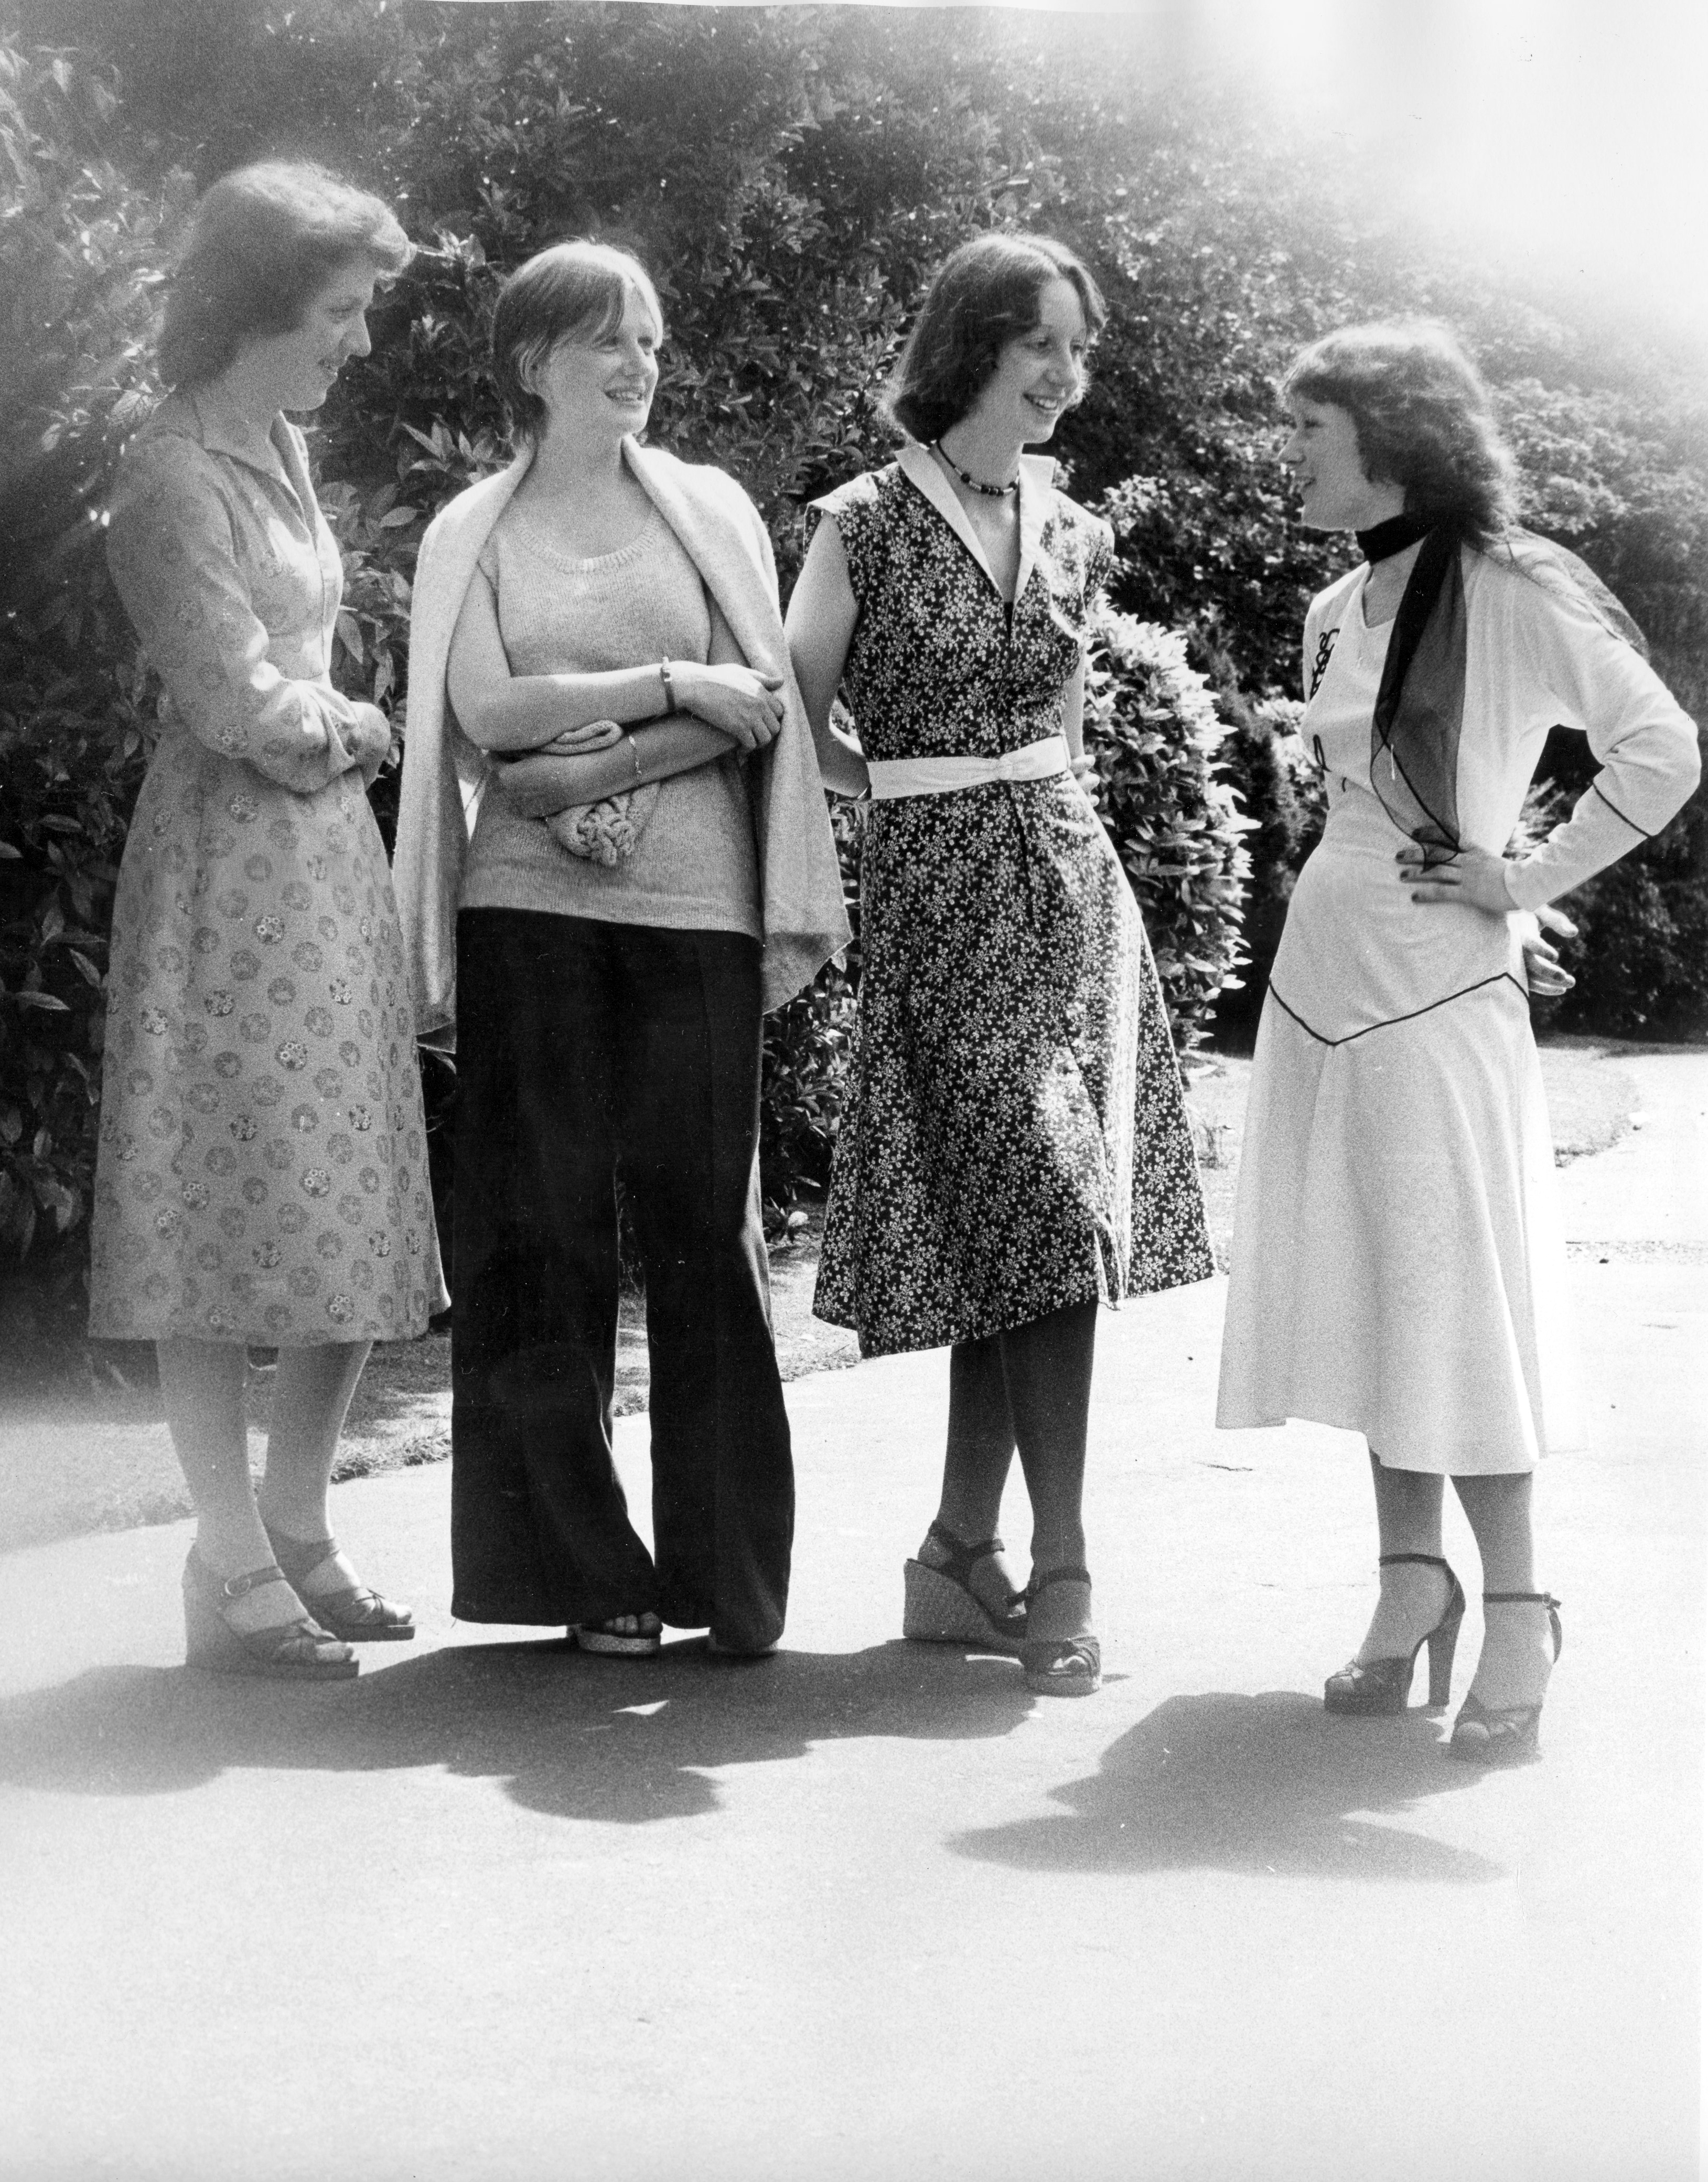 Fashionably dressed students at South Shields Marine and Technical College, about 1970s